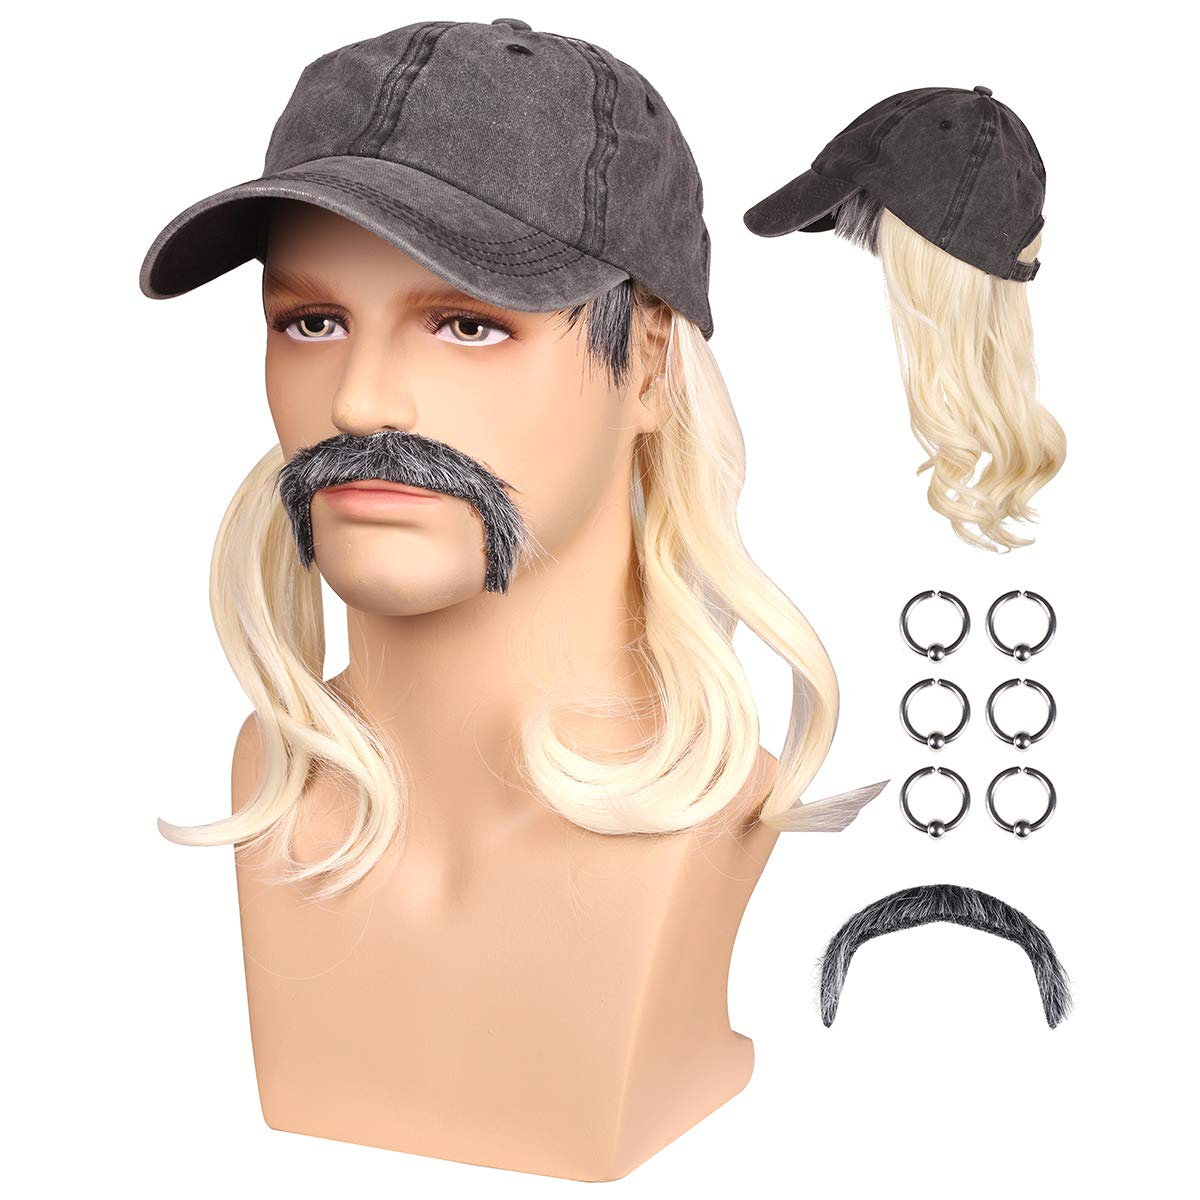 Black Hat Blonde Wig with Ear Clips and Mustache for Men